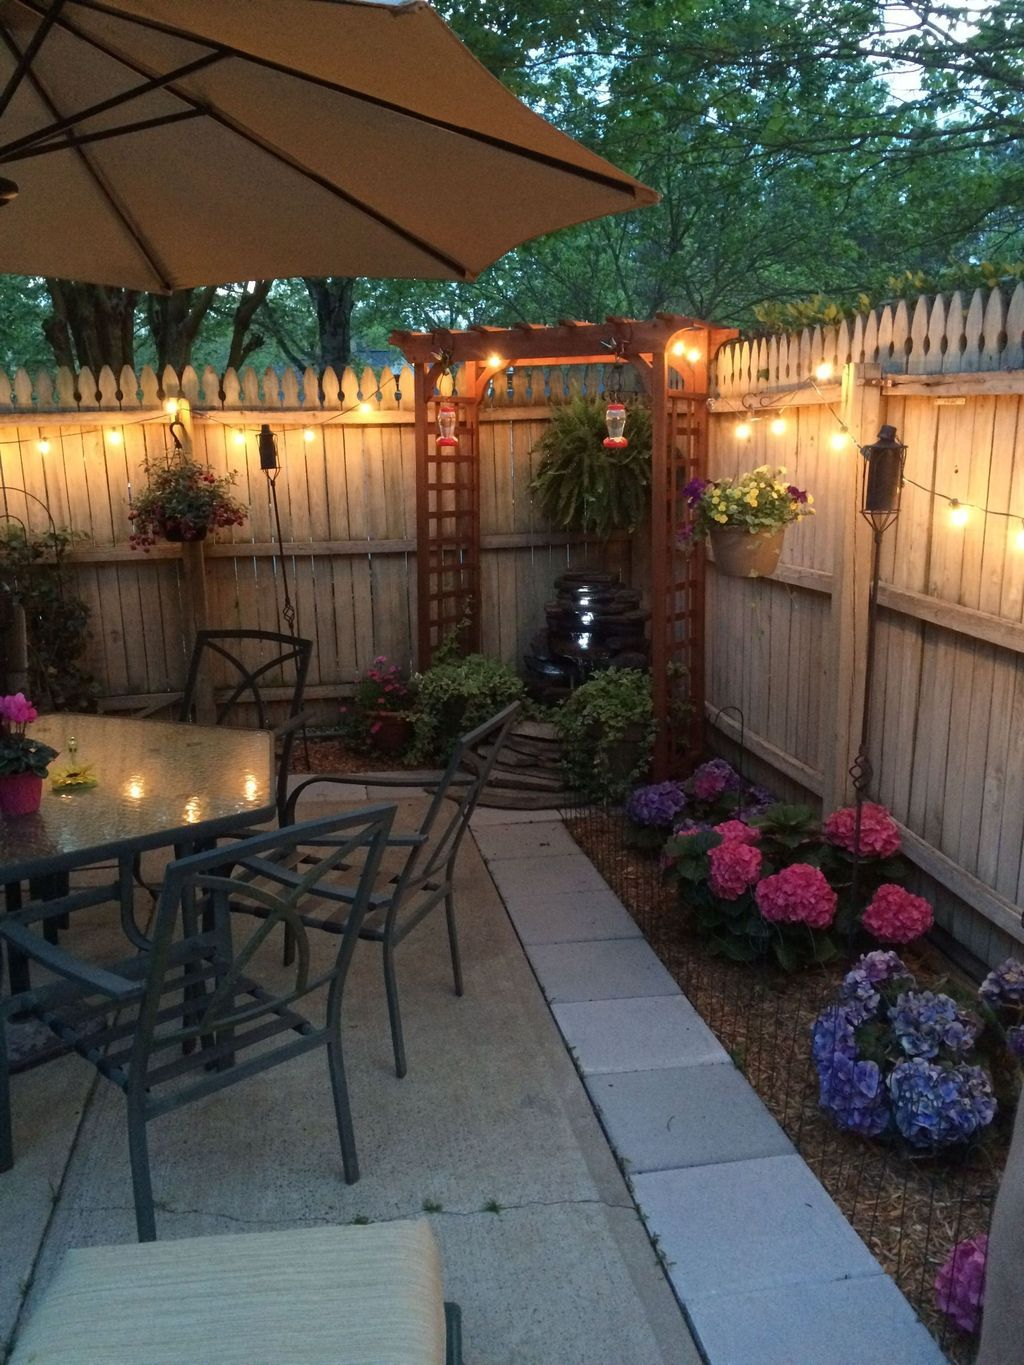 40 gorgeous small backyard landscaping ideas page 7 of on gorgeous small backyard landscaping ideas id=93939